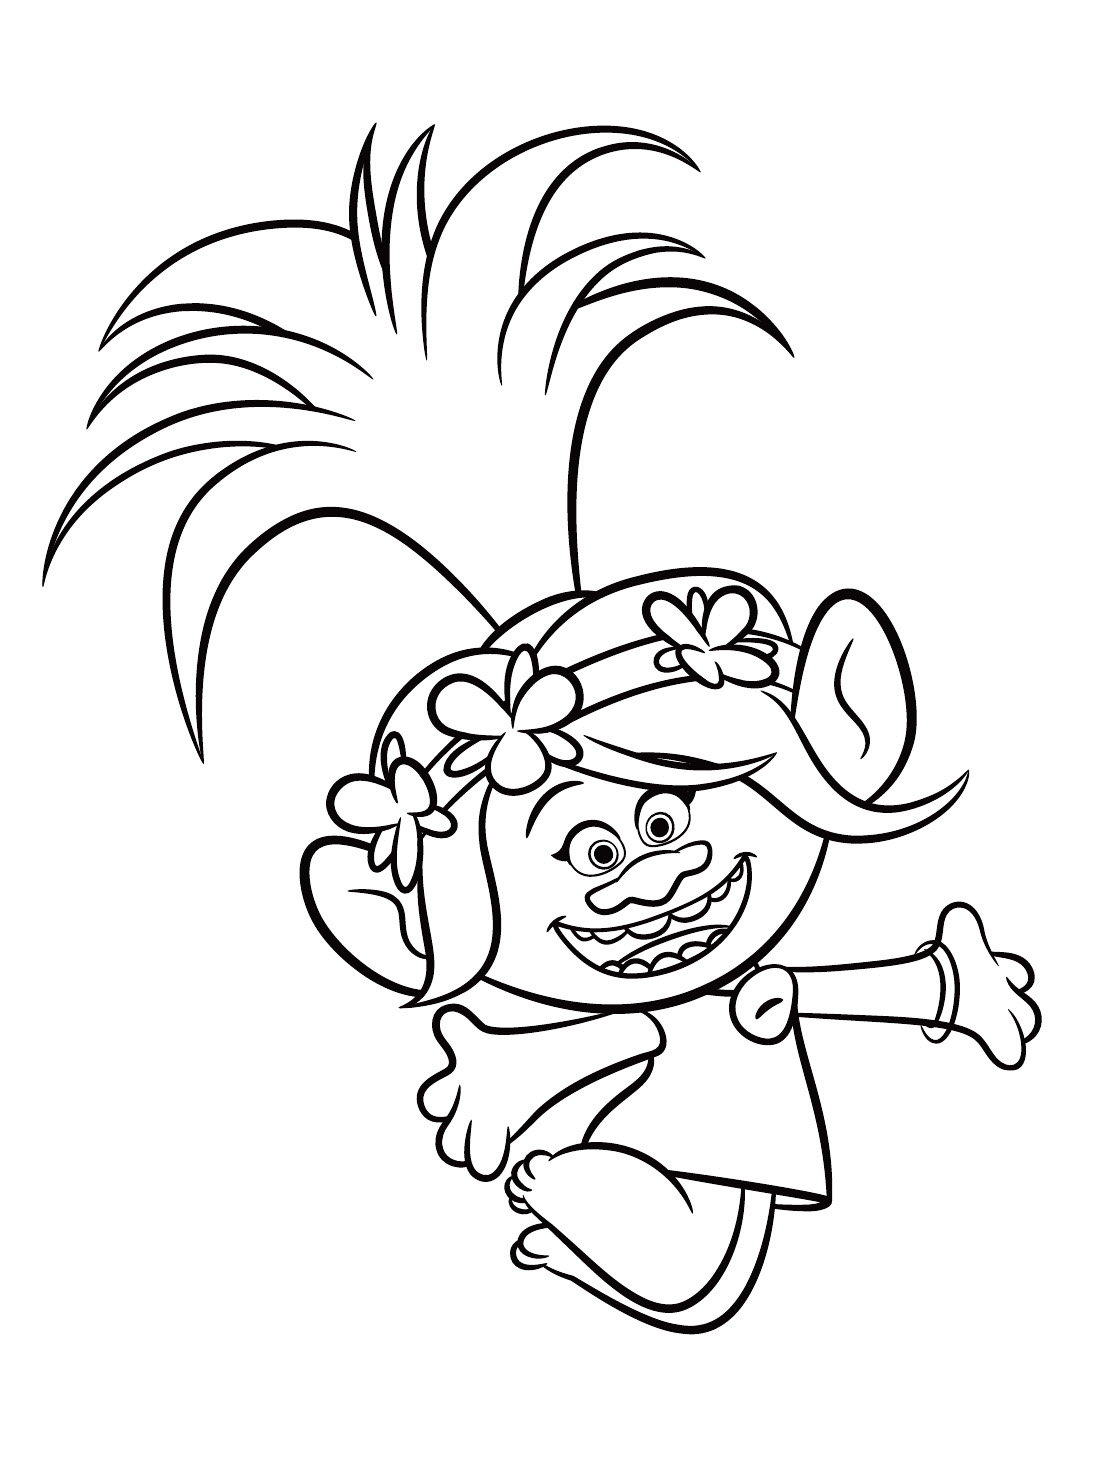 trolls poppy coloring pages - Coloring Page Trolls